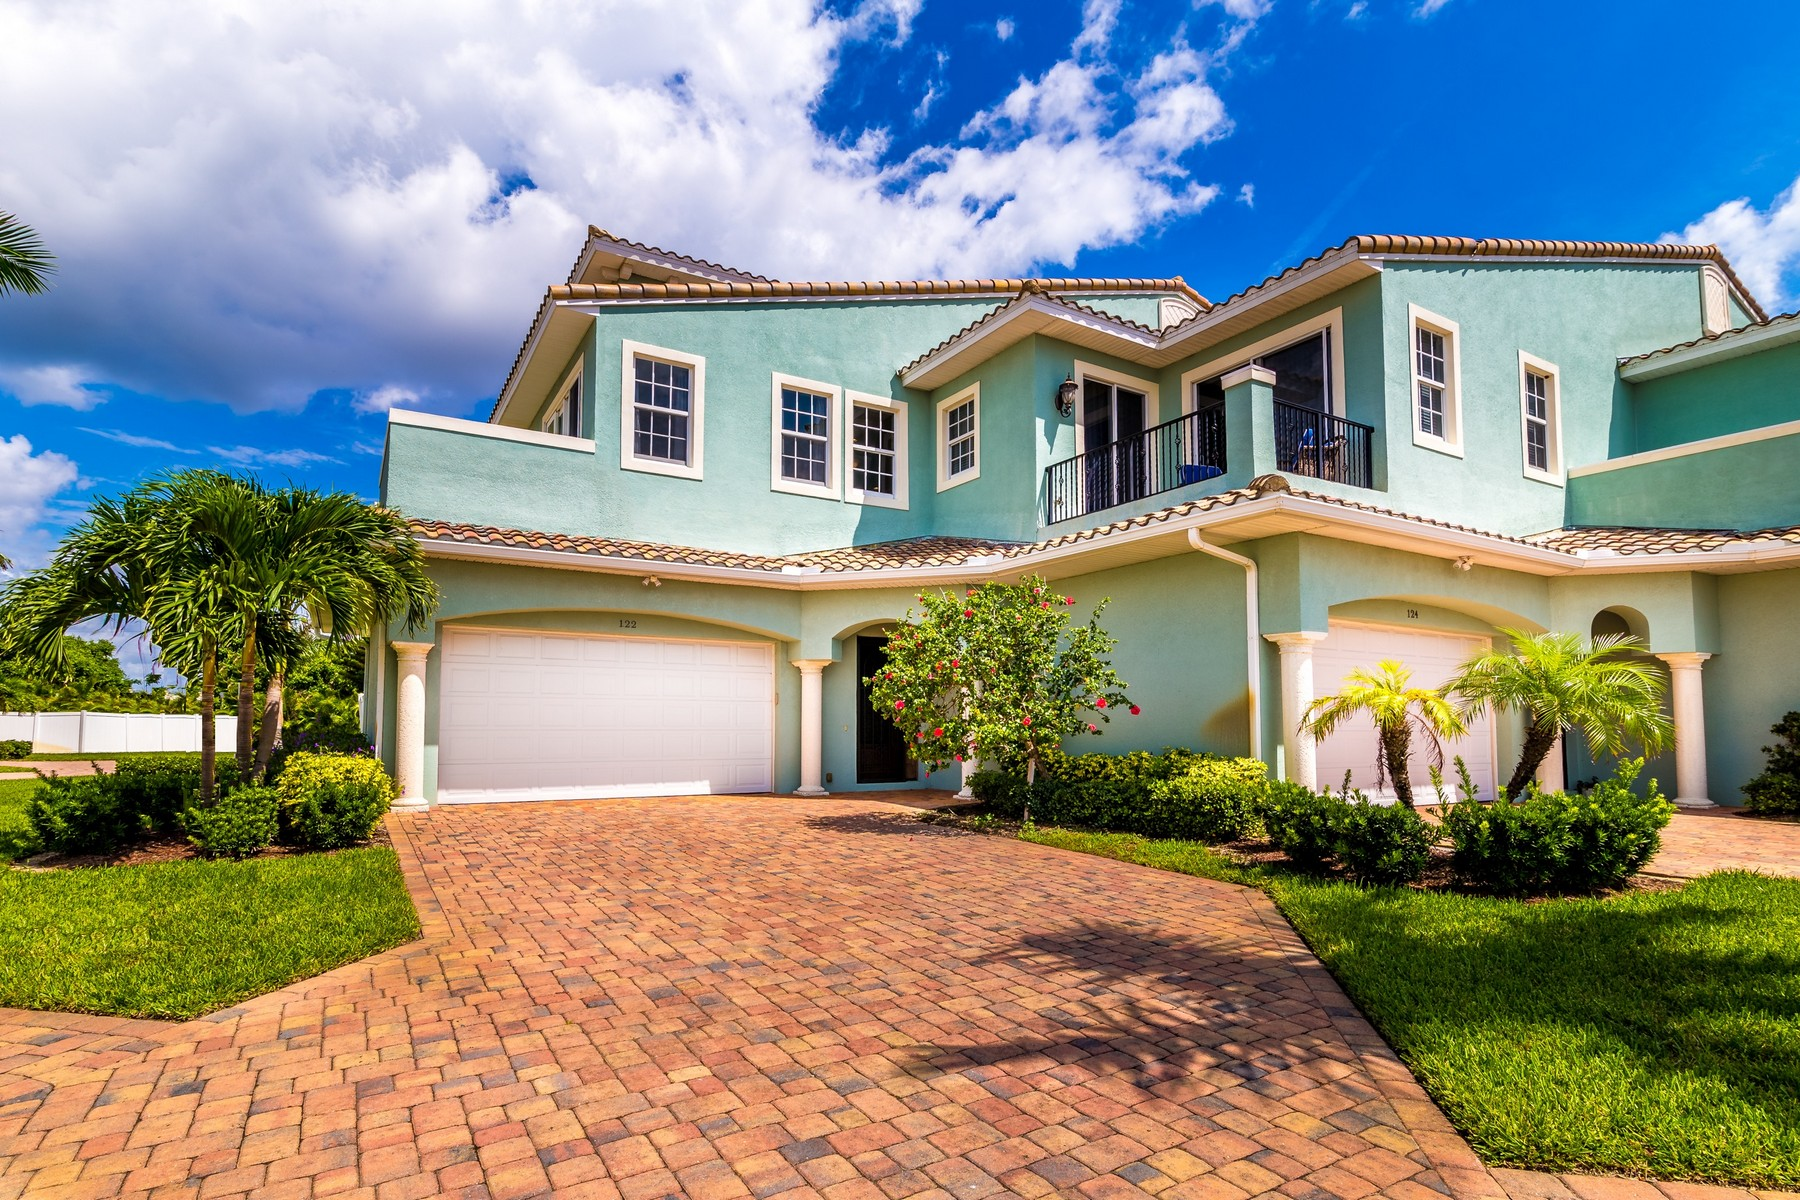 Single Family Home for Sale at Luxury Townhome in Fortebello 122 Mediterranean Way Satellite Beach, Florida 32937 United States